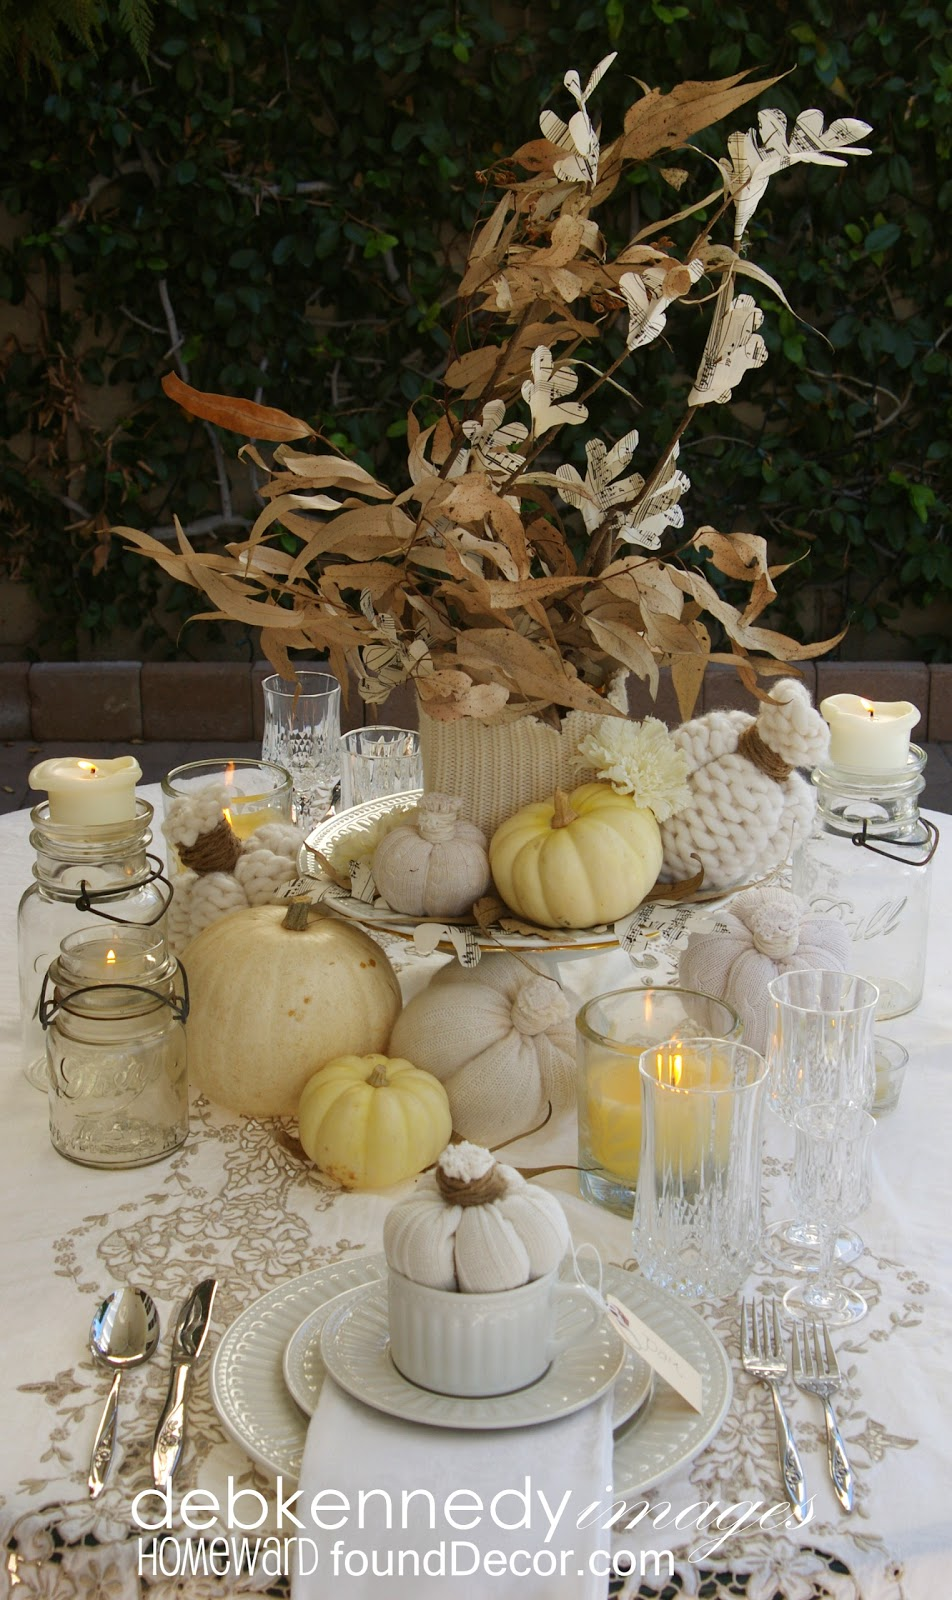 Decorating Ideas > Vintage White Fall TablescapehomewardFOUNDdecor ~ 080207_Thanksgiving Vintage Decorations